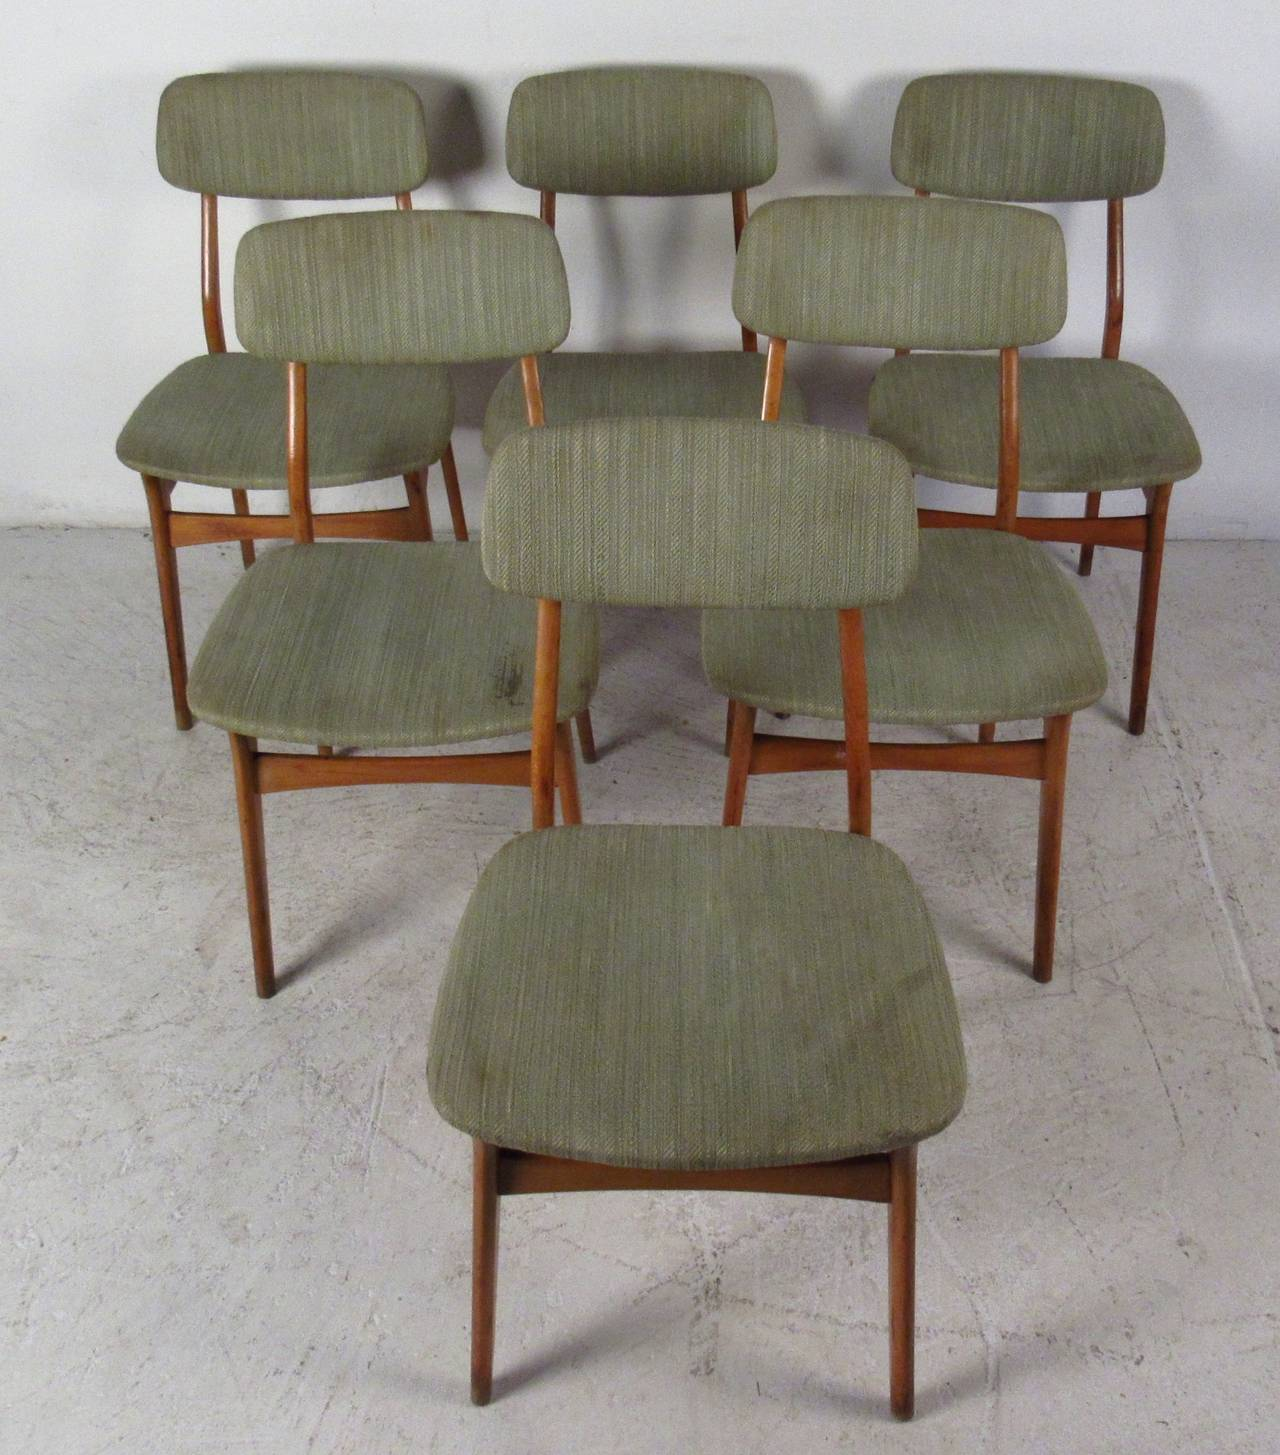 Danish Modern Dining Chairs For Sale Set Of Six Mid Century Upholstered Teak Dining Chairs